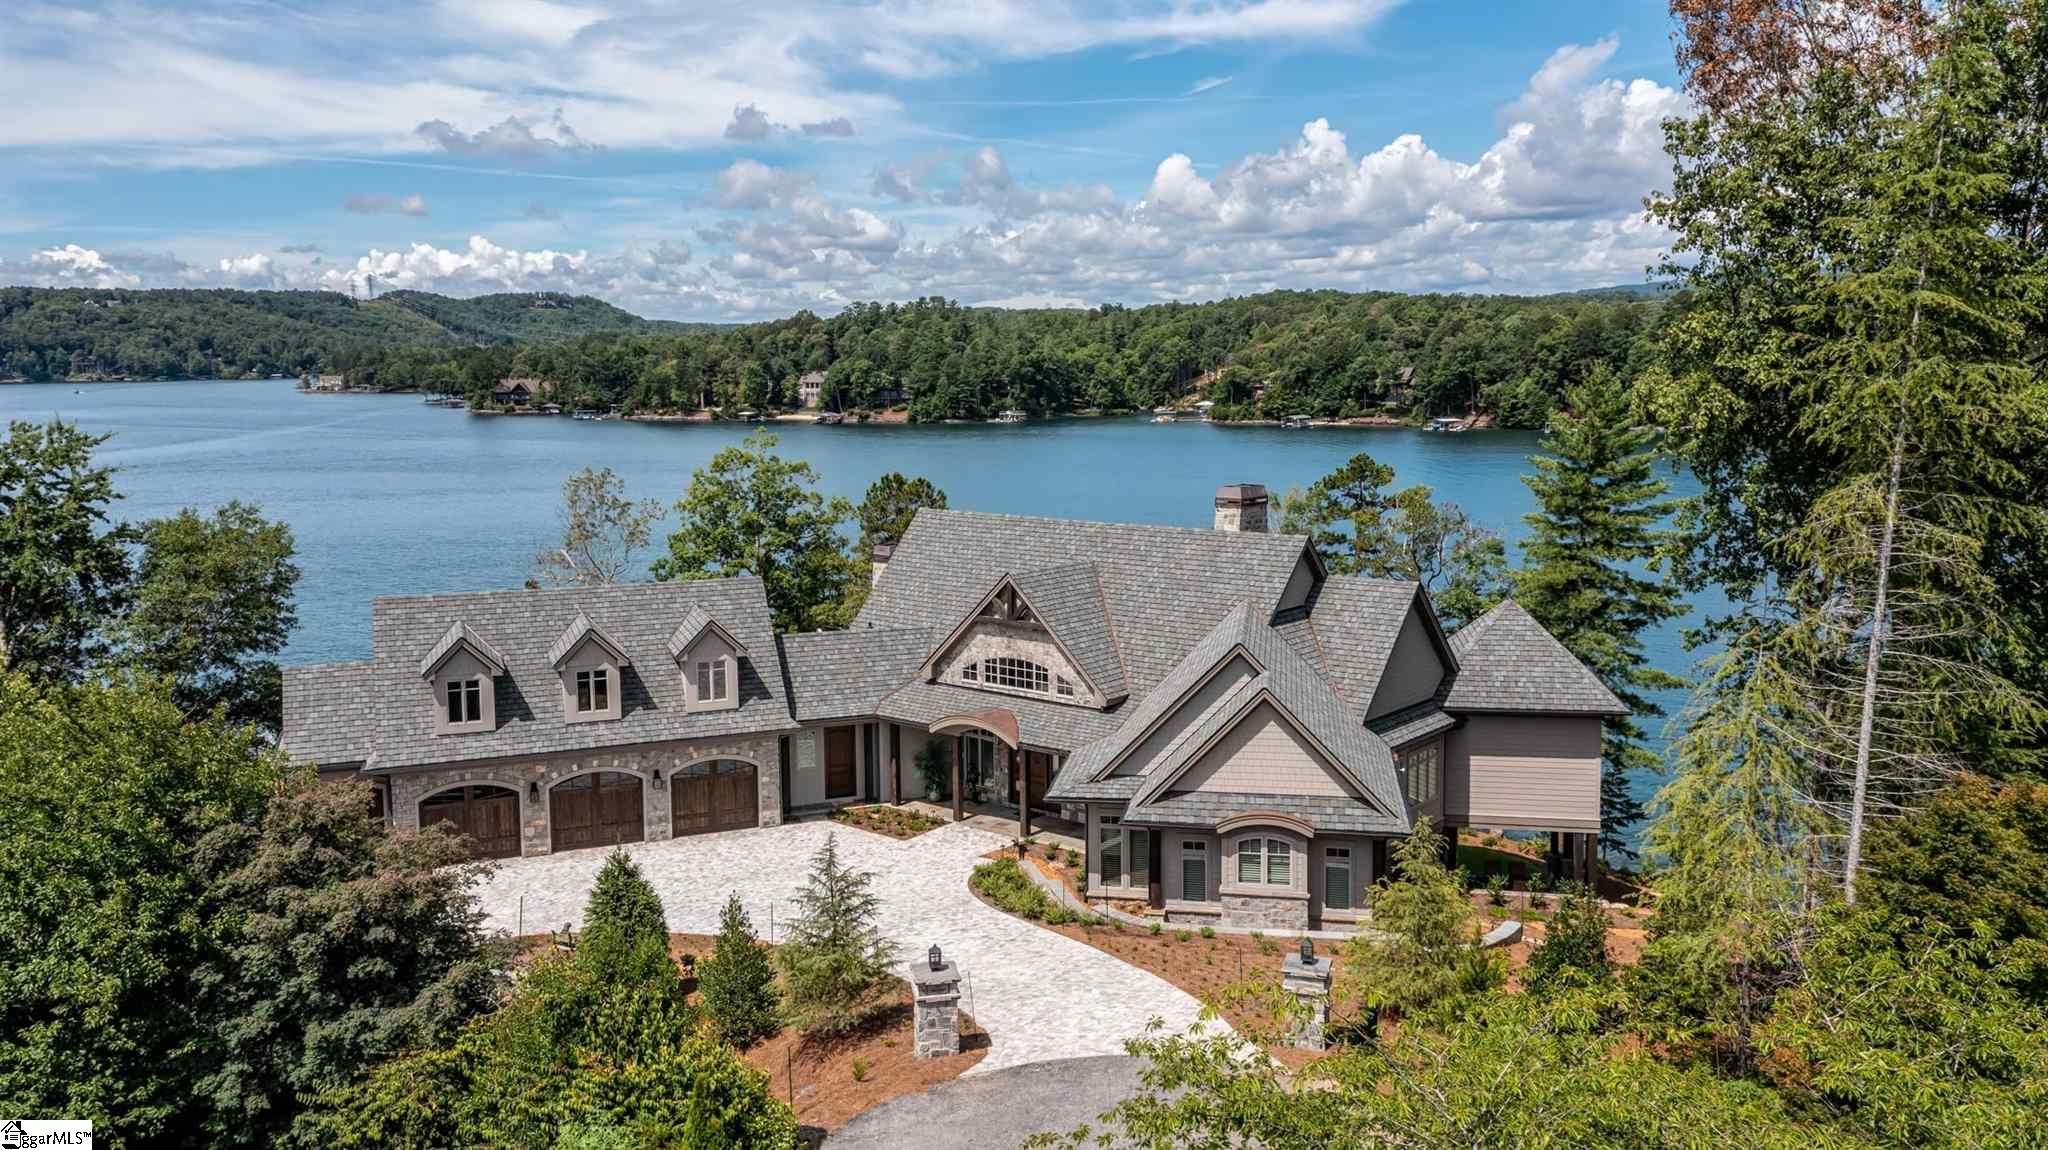 Welcome to 215 Passion Flower Way sitting upon one of the finest lots with premiere views in the Cliffs at Keowee Vineyards.   Unique offering of a fully furnished new home constructed by Fairview Builders and tastefully decorated by Villa Verona Design.  Completed Spring 2021, this 6700 sqft, 5-bedroom home is meticulously landscaped, furnished, and decorated awaiting immediate occupancy to enjoy the season.  Sitting upon a perfect peninsula point lot with very gentle slope and almost 400' of 270-degree expansive panoramic views of waterfront, mountains and sunsets. With a 14-foot-wide entrance driveway and a large paver motor court welcoming you to the front door, upon entry you are immediately captivated with stunning water and mountain views showcasing this incredible lot.  A large open living area with cathedral beamed ceilings over old-world Siberian Oak scraped floors and separate large dining area flank a fully equipped gourmet kitchen and flows through disappearing doors to an inviting screened porch with wood burning fireplace and wrap-around balcony perfect for outdoor living and entertaining.   The attractive kitchen with views of the lake features beautiful honed (leathered) granite counter tops, custom display cabinetry, Sub Zero and Thermador appliances, and ample storage with pull out drawers.  Adjoining the large living area is a beautiful custom wine room behind glass window display, with iron gate doors, stone walls, handcrafted wine barrel ceiling, and beautiful hammered copper sink and leathered granite counter tasting area. A unique floor plan provides 3-bedroom suites on the main level.  The large and relaxing master suite along with 2 guest suites providing welcoming and easy access for your guests.  Convenient just off the living room the master suite and accompanying sitting room/library anchors the right rear corner of the home providing floor to ceiling windows equipped with remote controlled blinds for wonderful panoramic views.  This ma